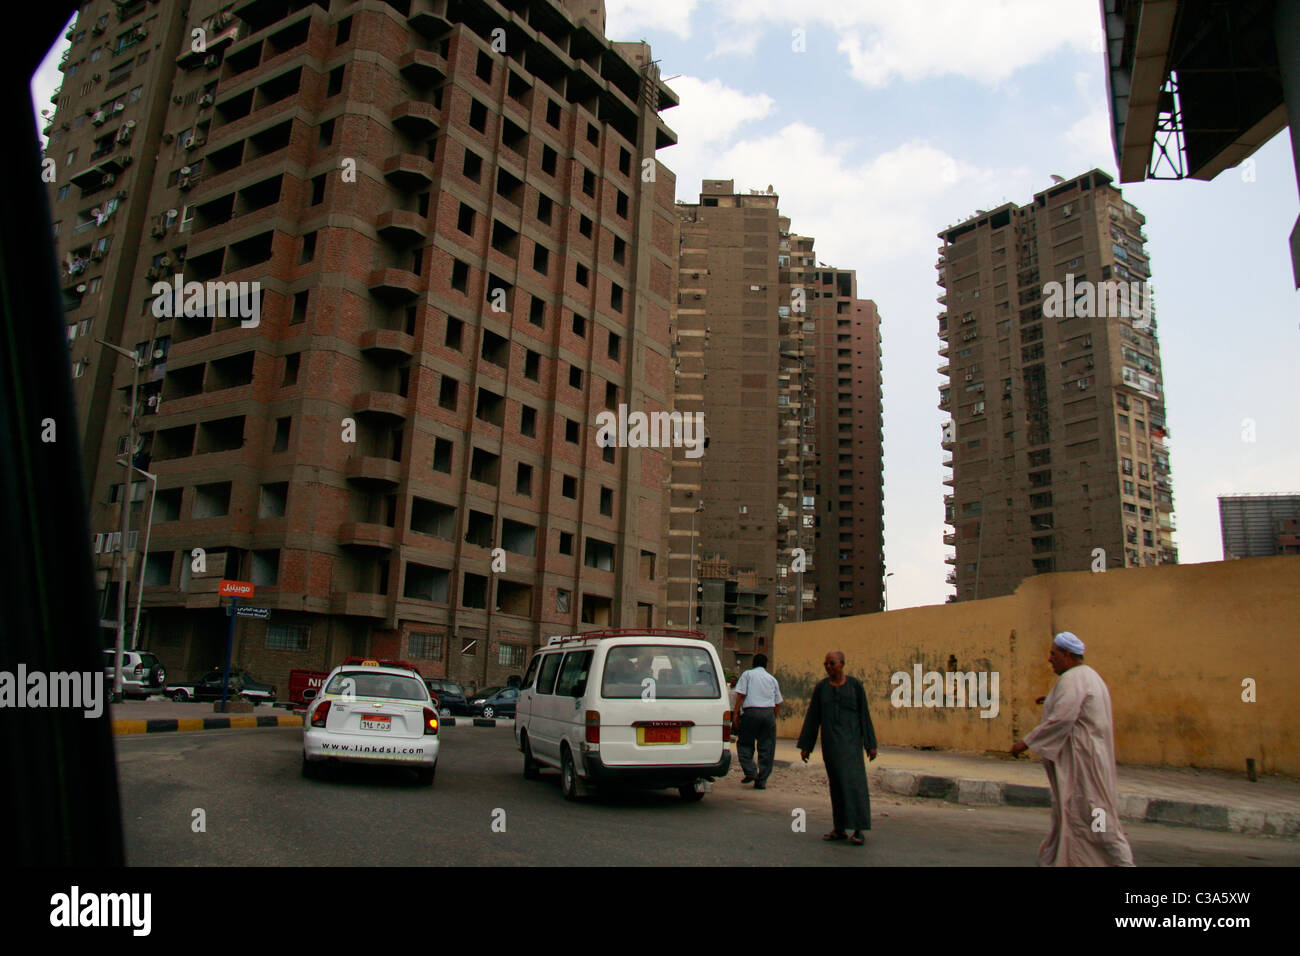 Cairo's residential apartment buildings. Stock Photo